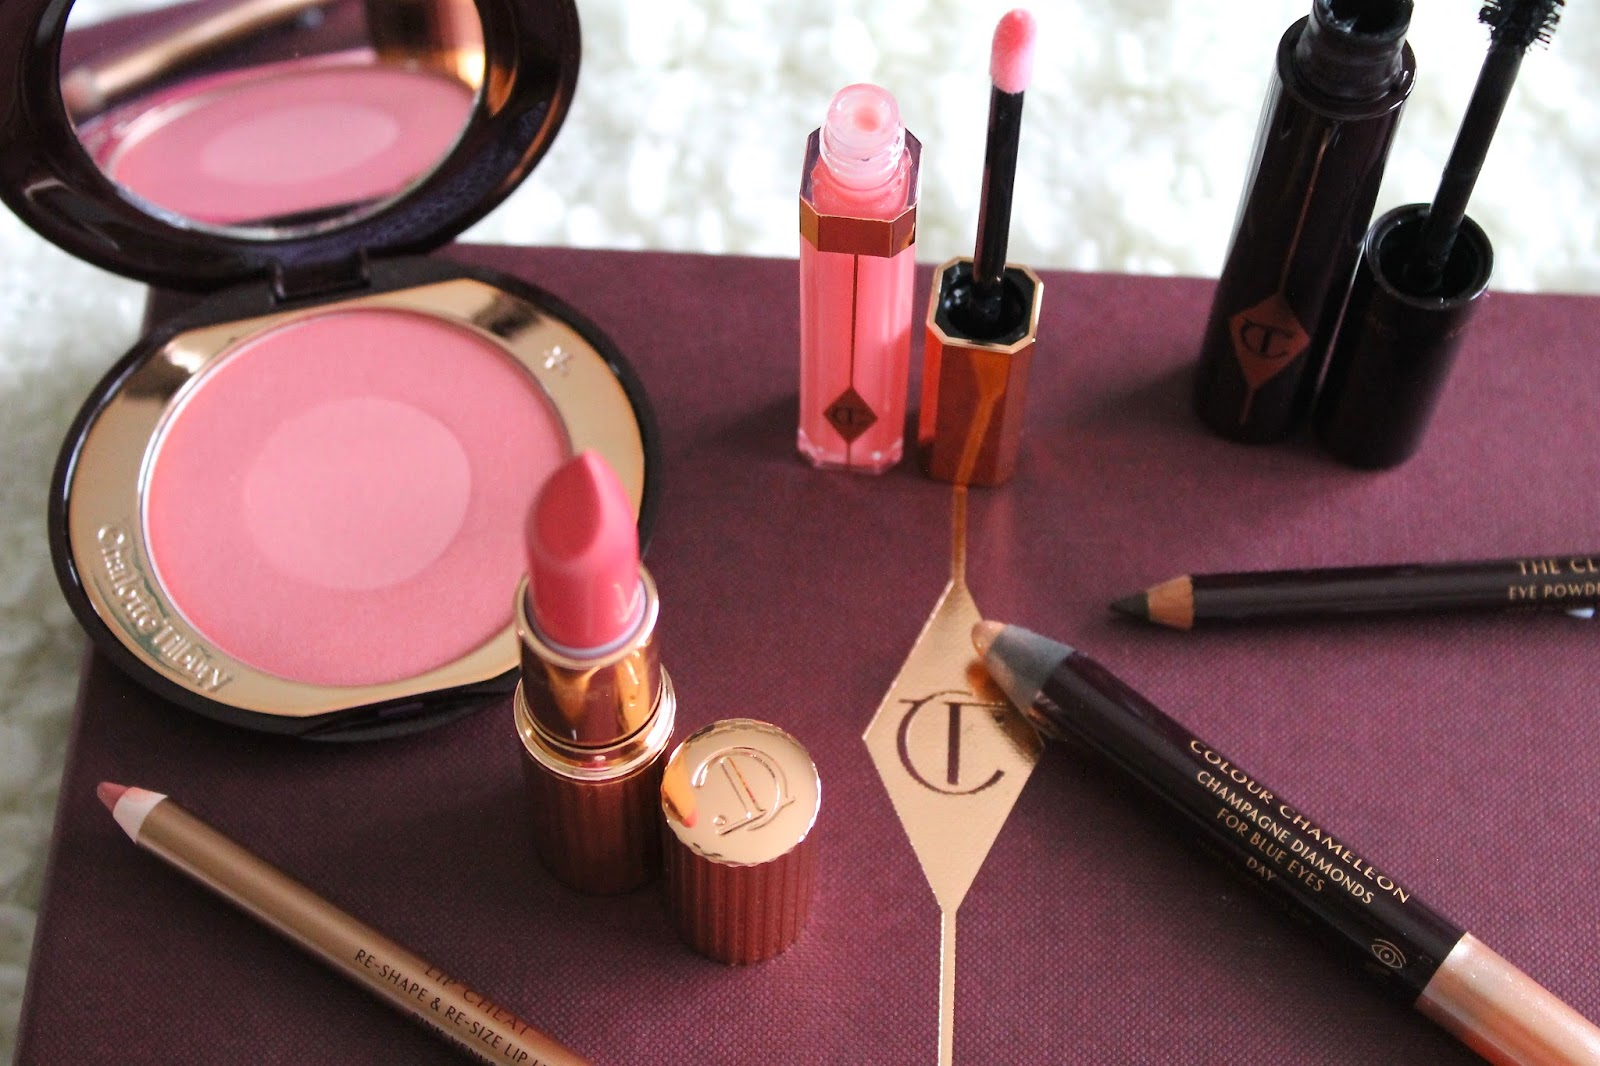 Charlotte Tilbury Lip Cheat in Pink Venus